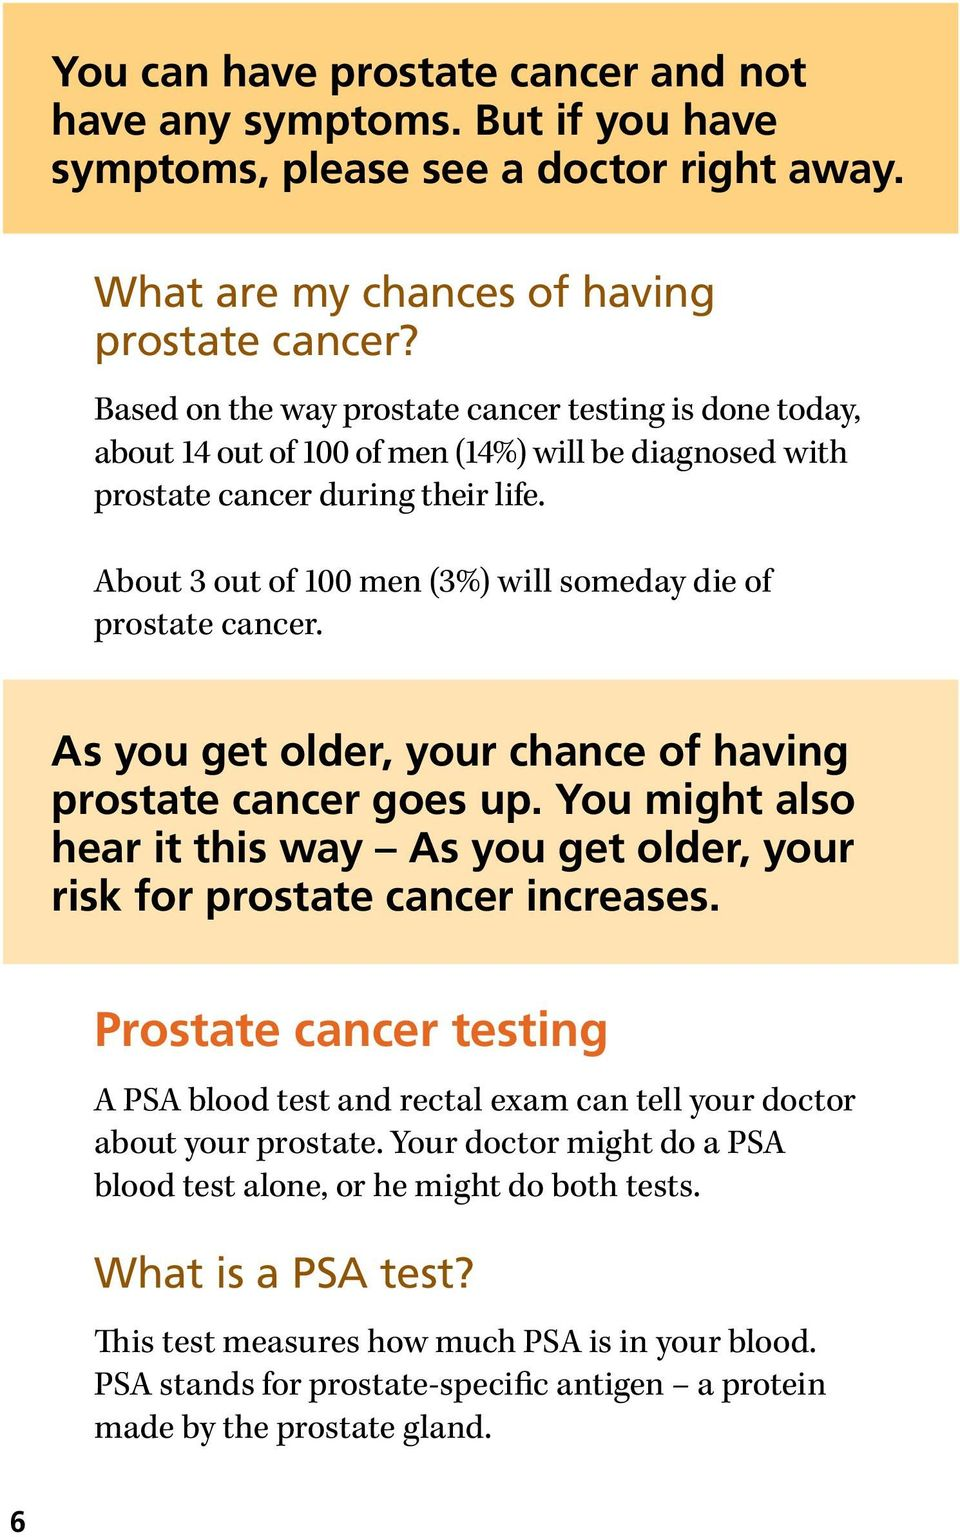 About 3 out of 100 men (3%) will someday die of prostate cancer. As you get older, your chance of having prostate cancer goes up.